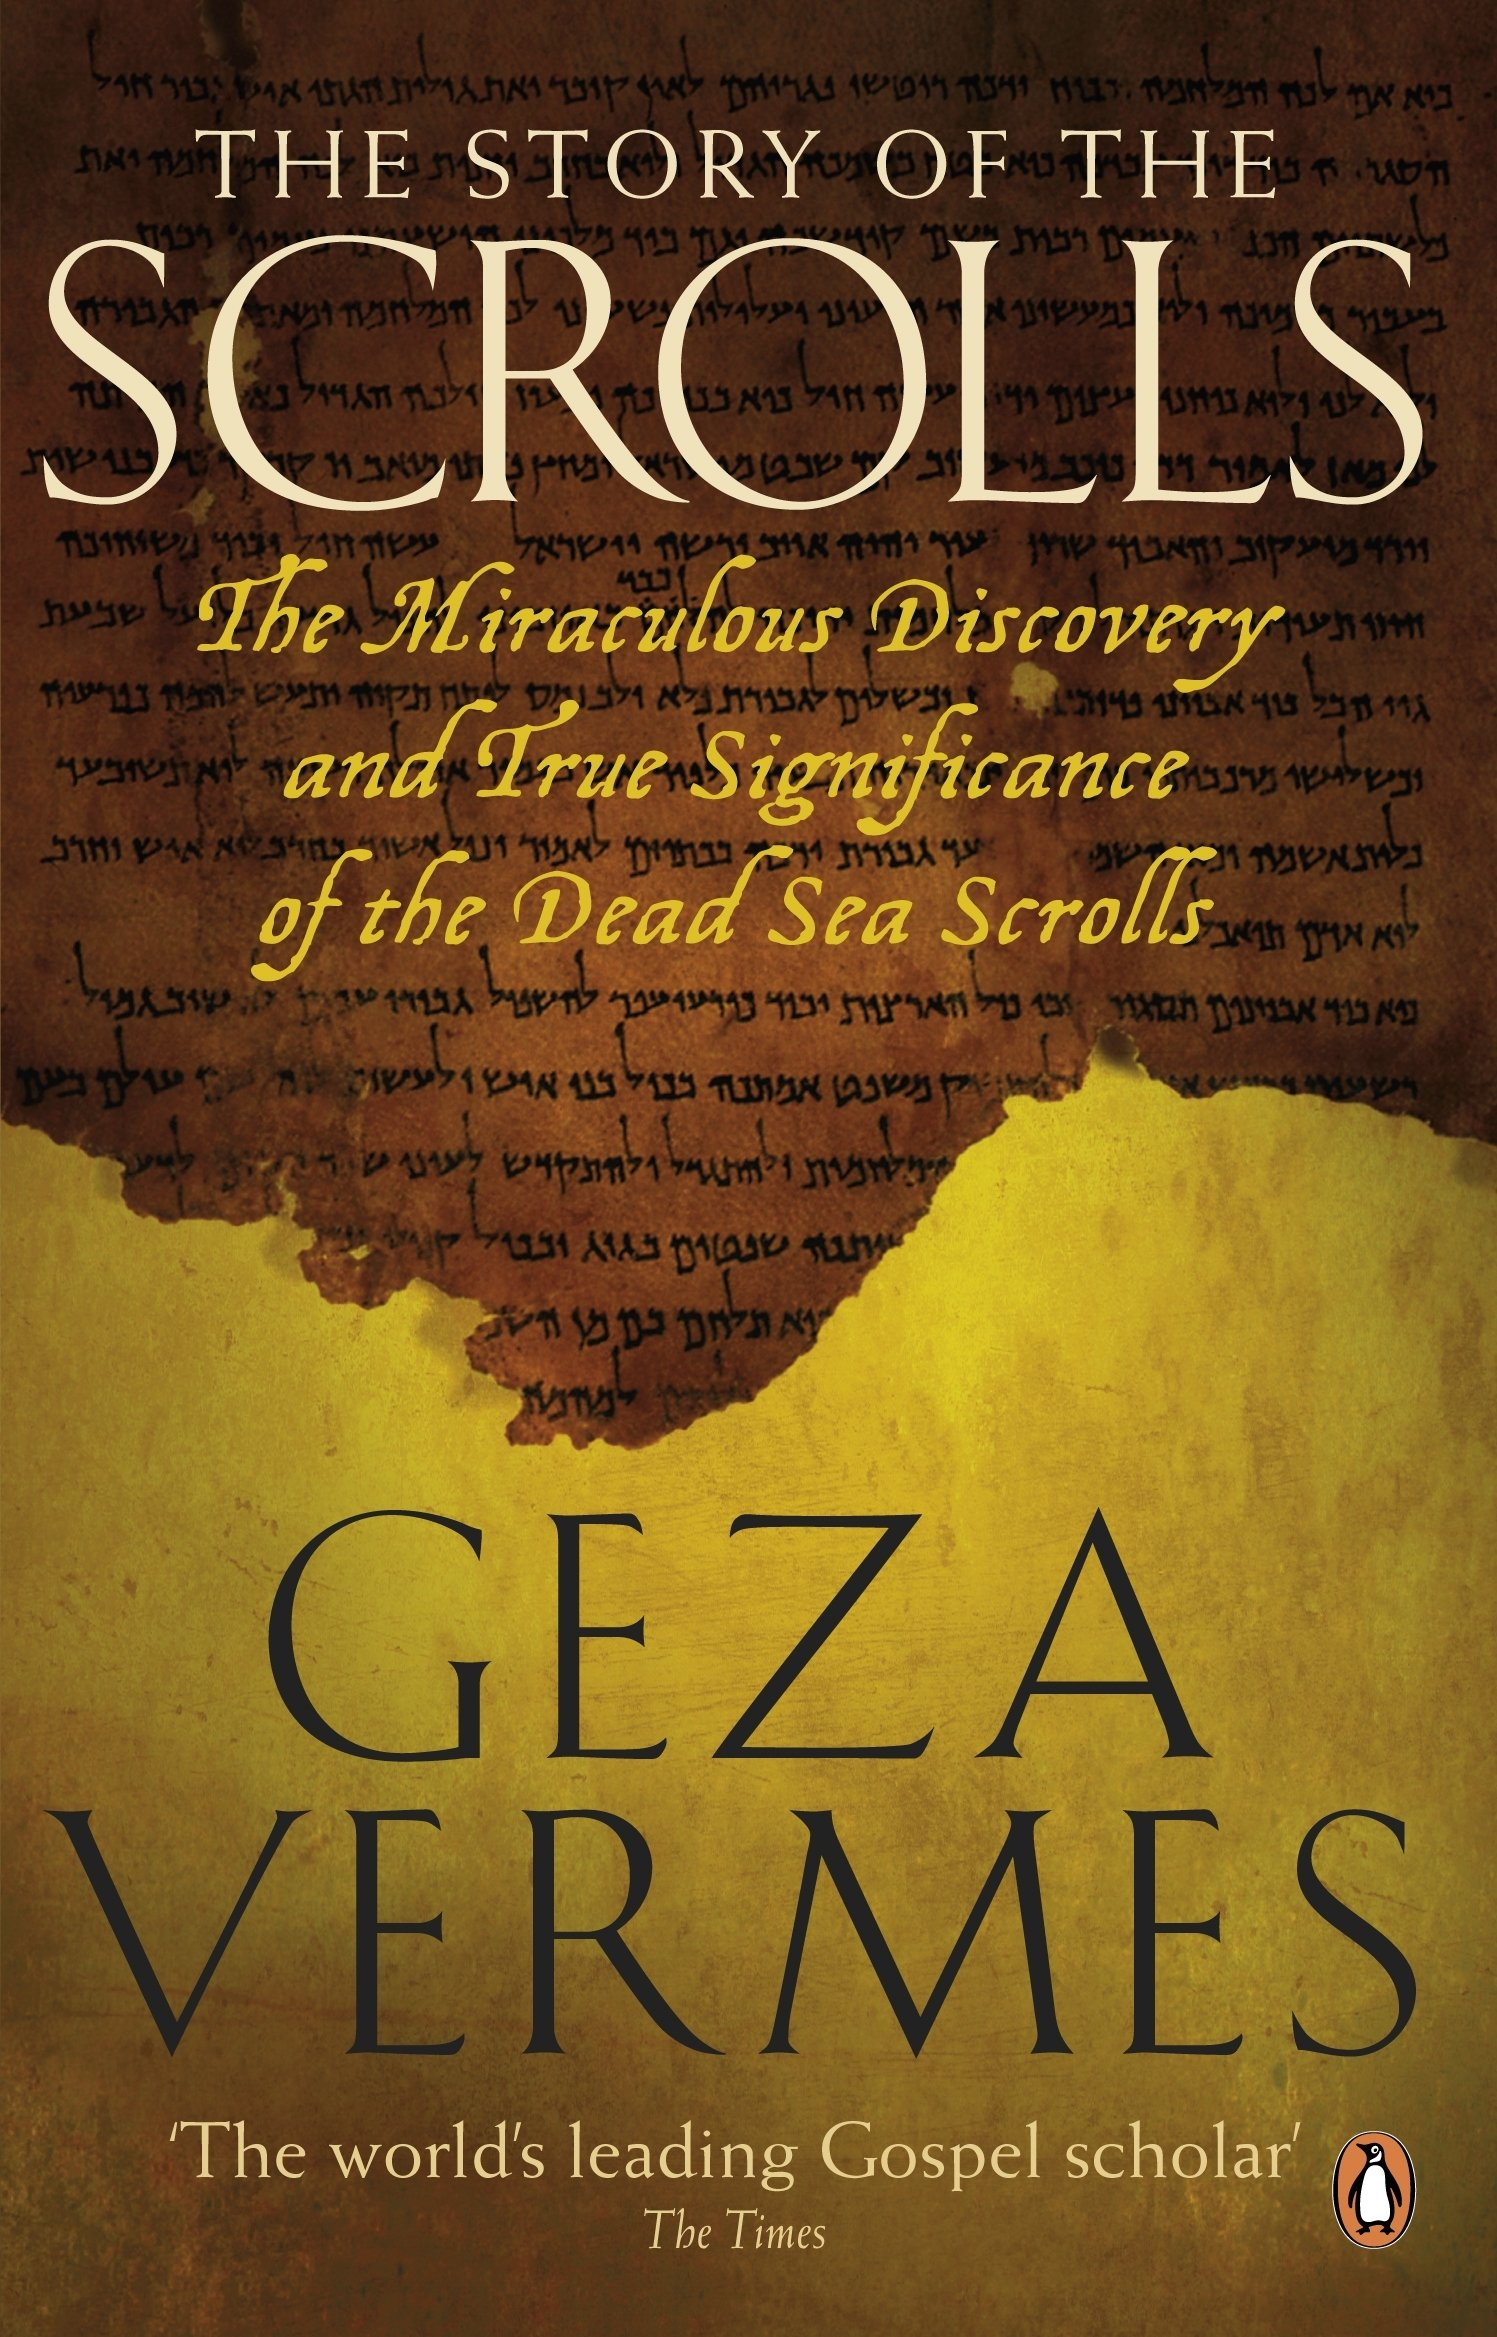 The story of the scrolls geza vermes 8601406235274 amazon the story of the scrolls geza vermes 8601406235274 amazon books fandeluxe Image collections